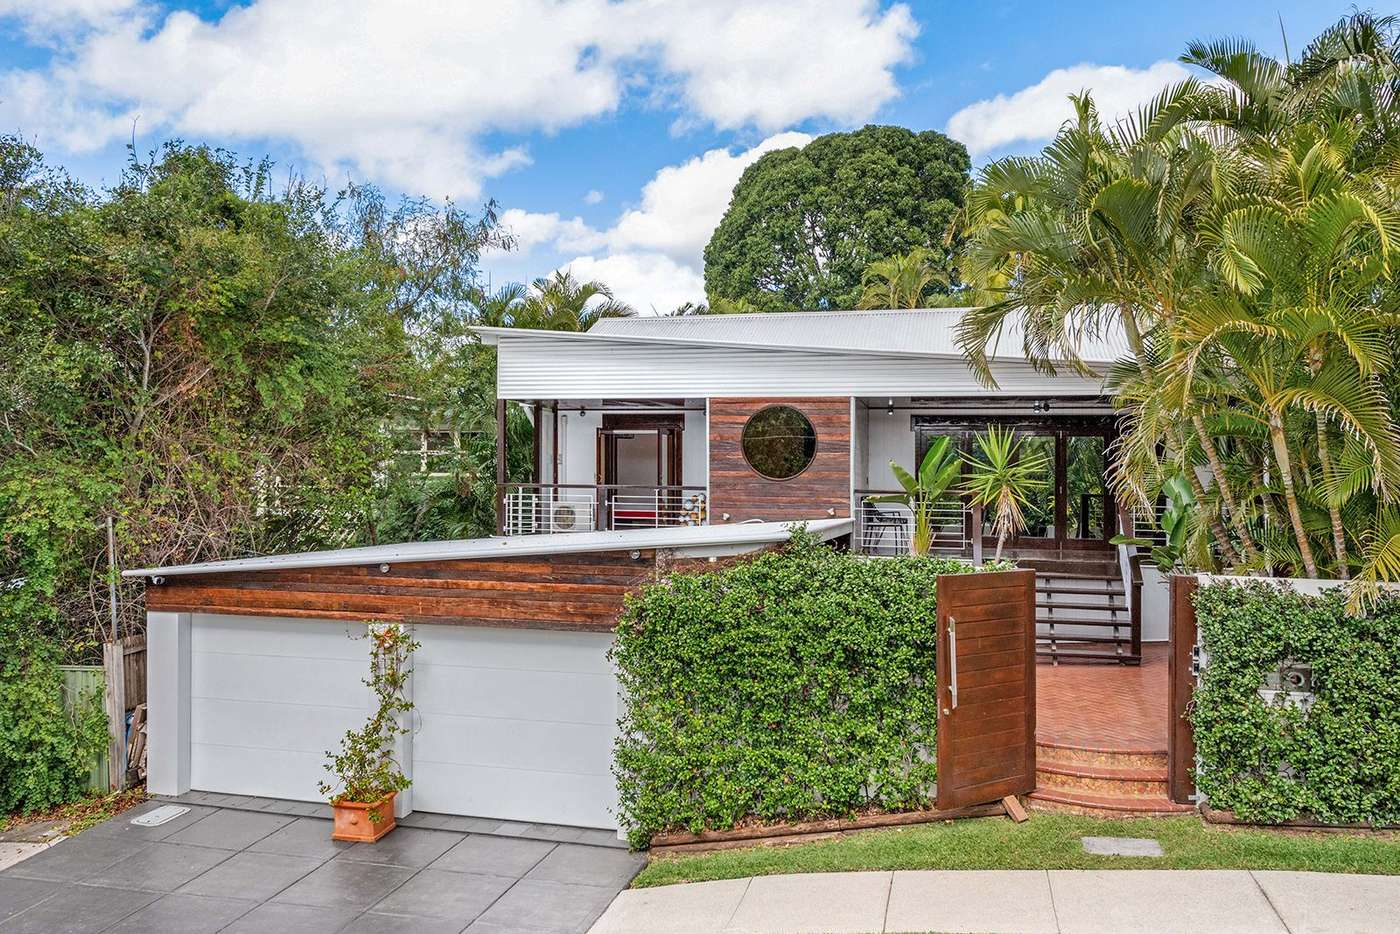 Main view of Homely house listing, 311 Long Street East, Graceville QLD 4075